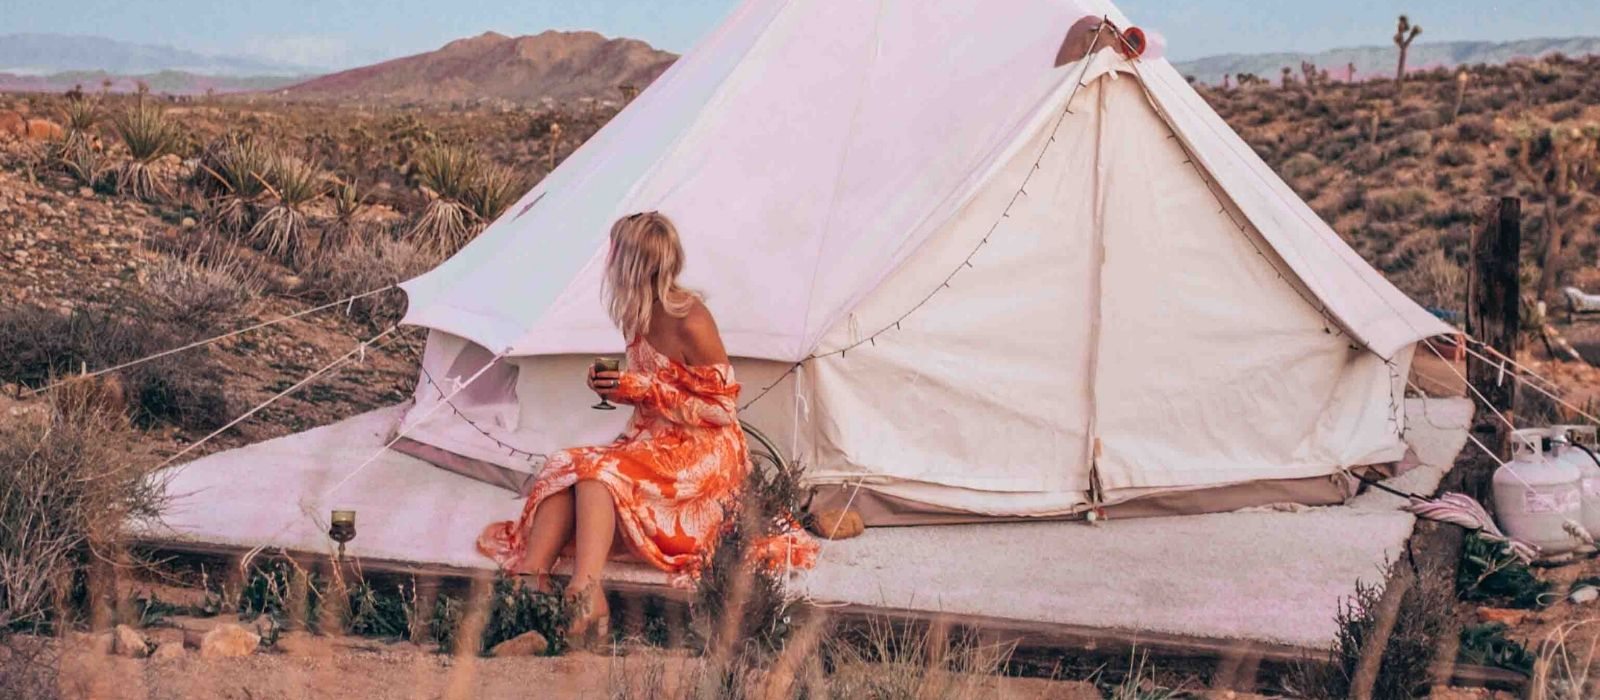 Joshua Tree Glamping The Best Luxury Tents Yurts Airstreams And Cabins The Dharma Trails When staying with jtvh you'll. joshua tree glamping the best luxury